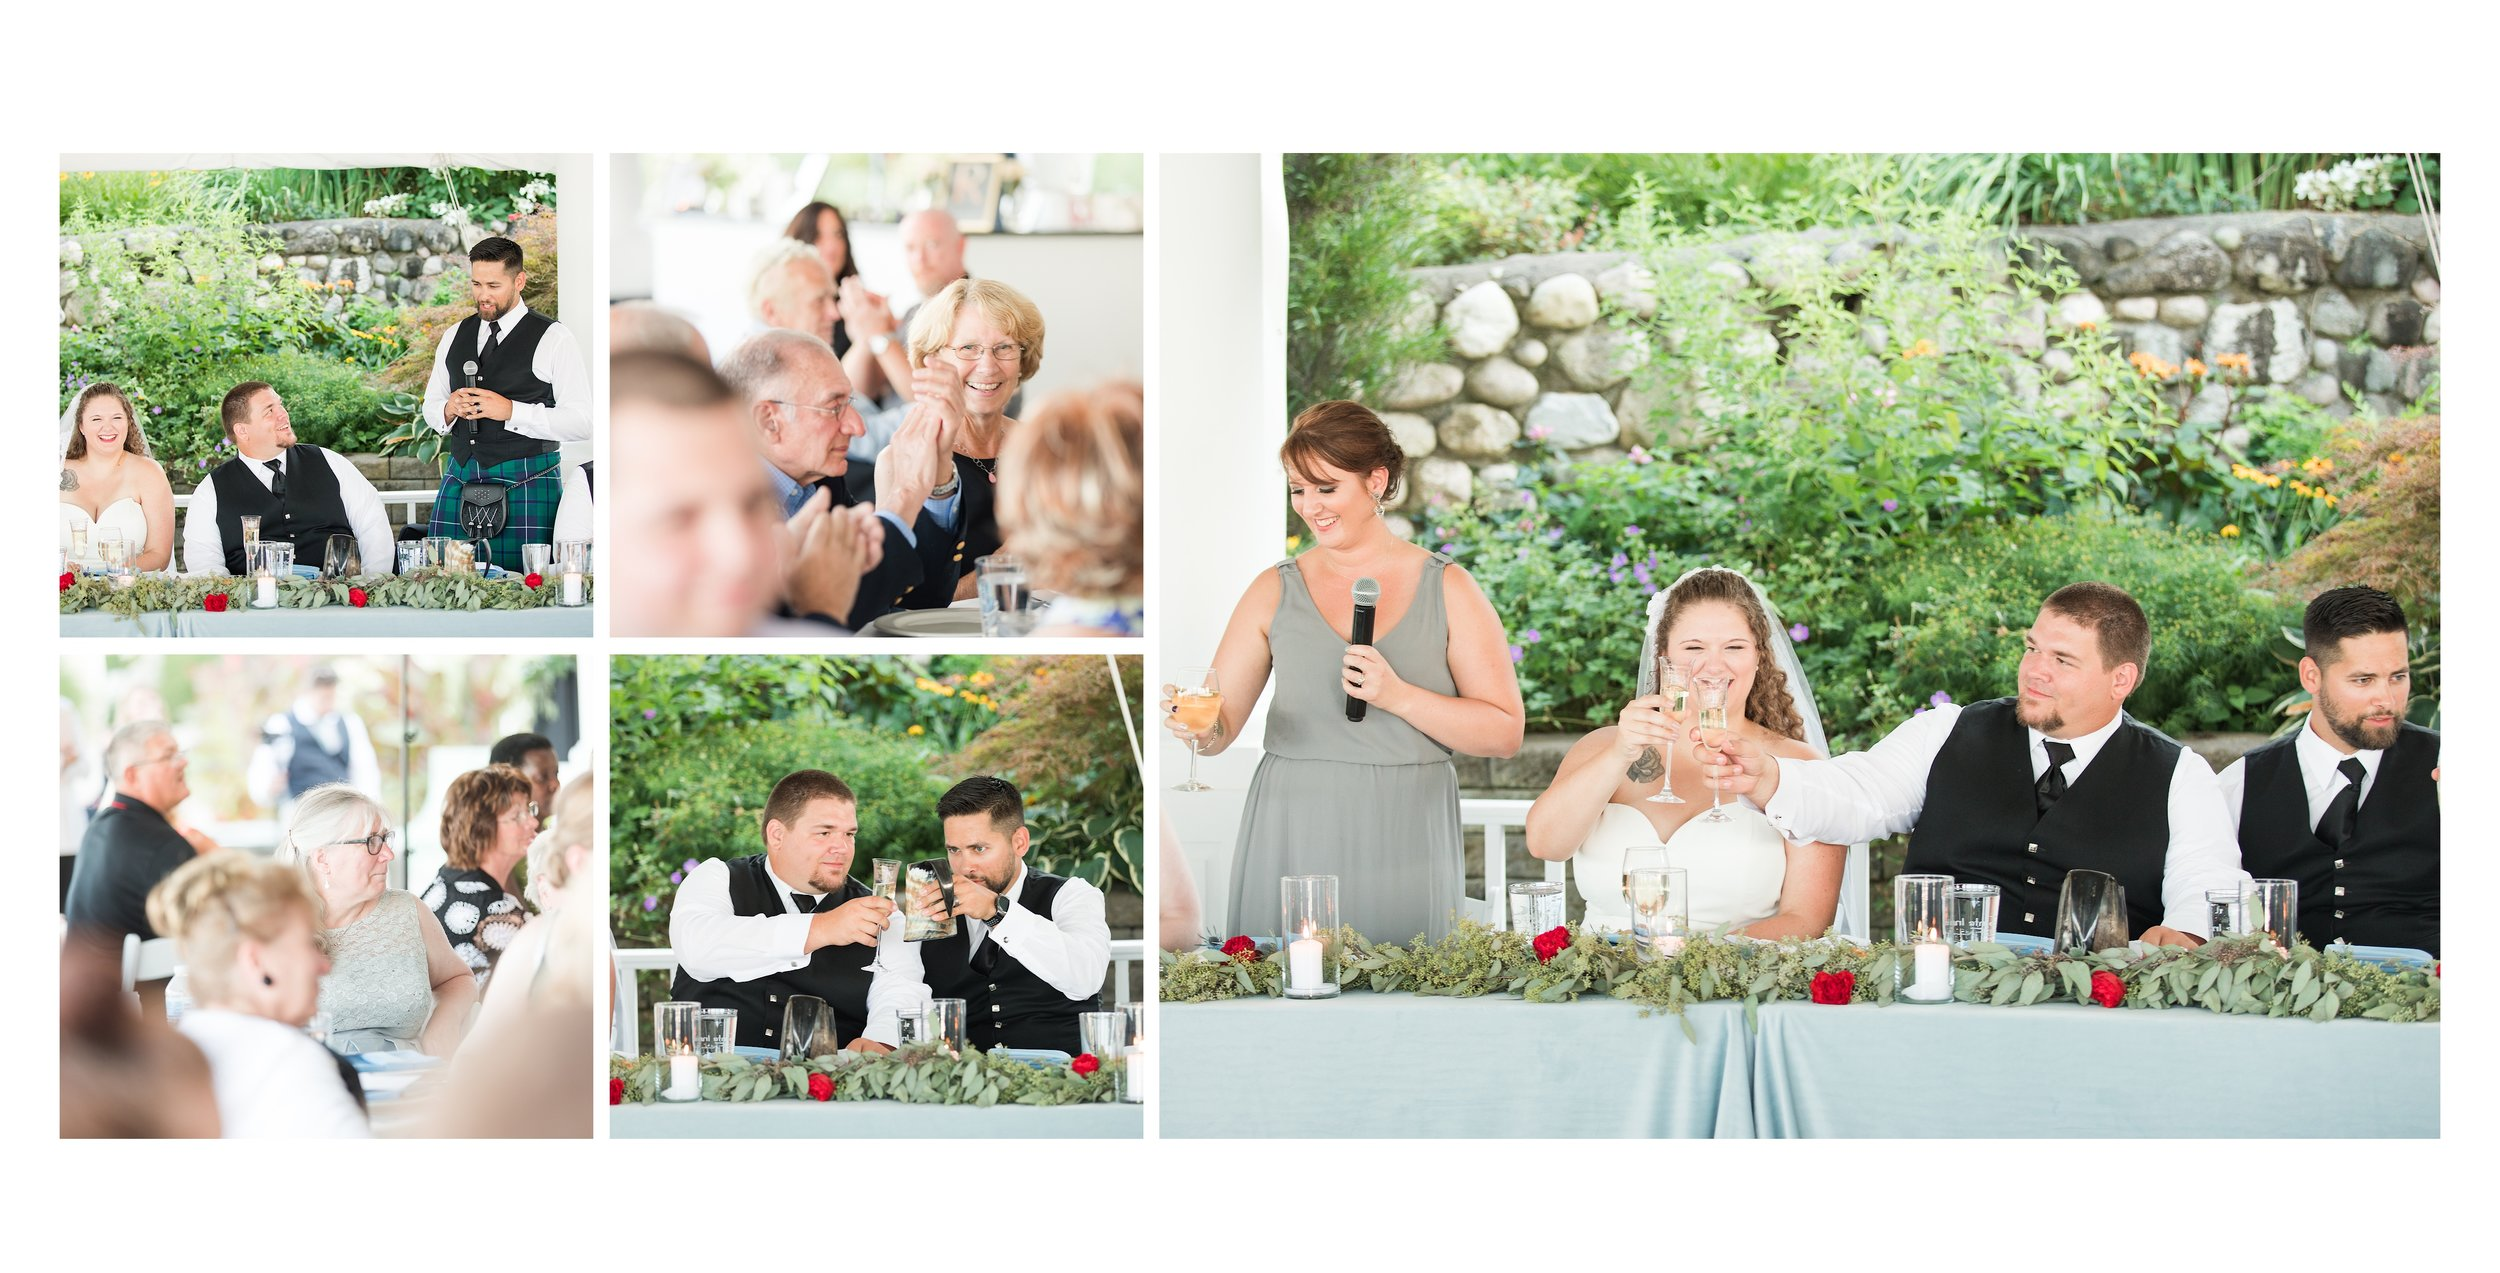 Our_Wedding_Album_12x12_-_30_pages_38.jpg